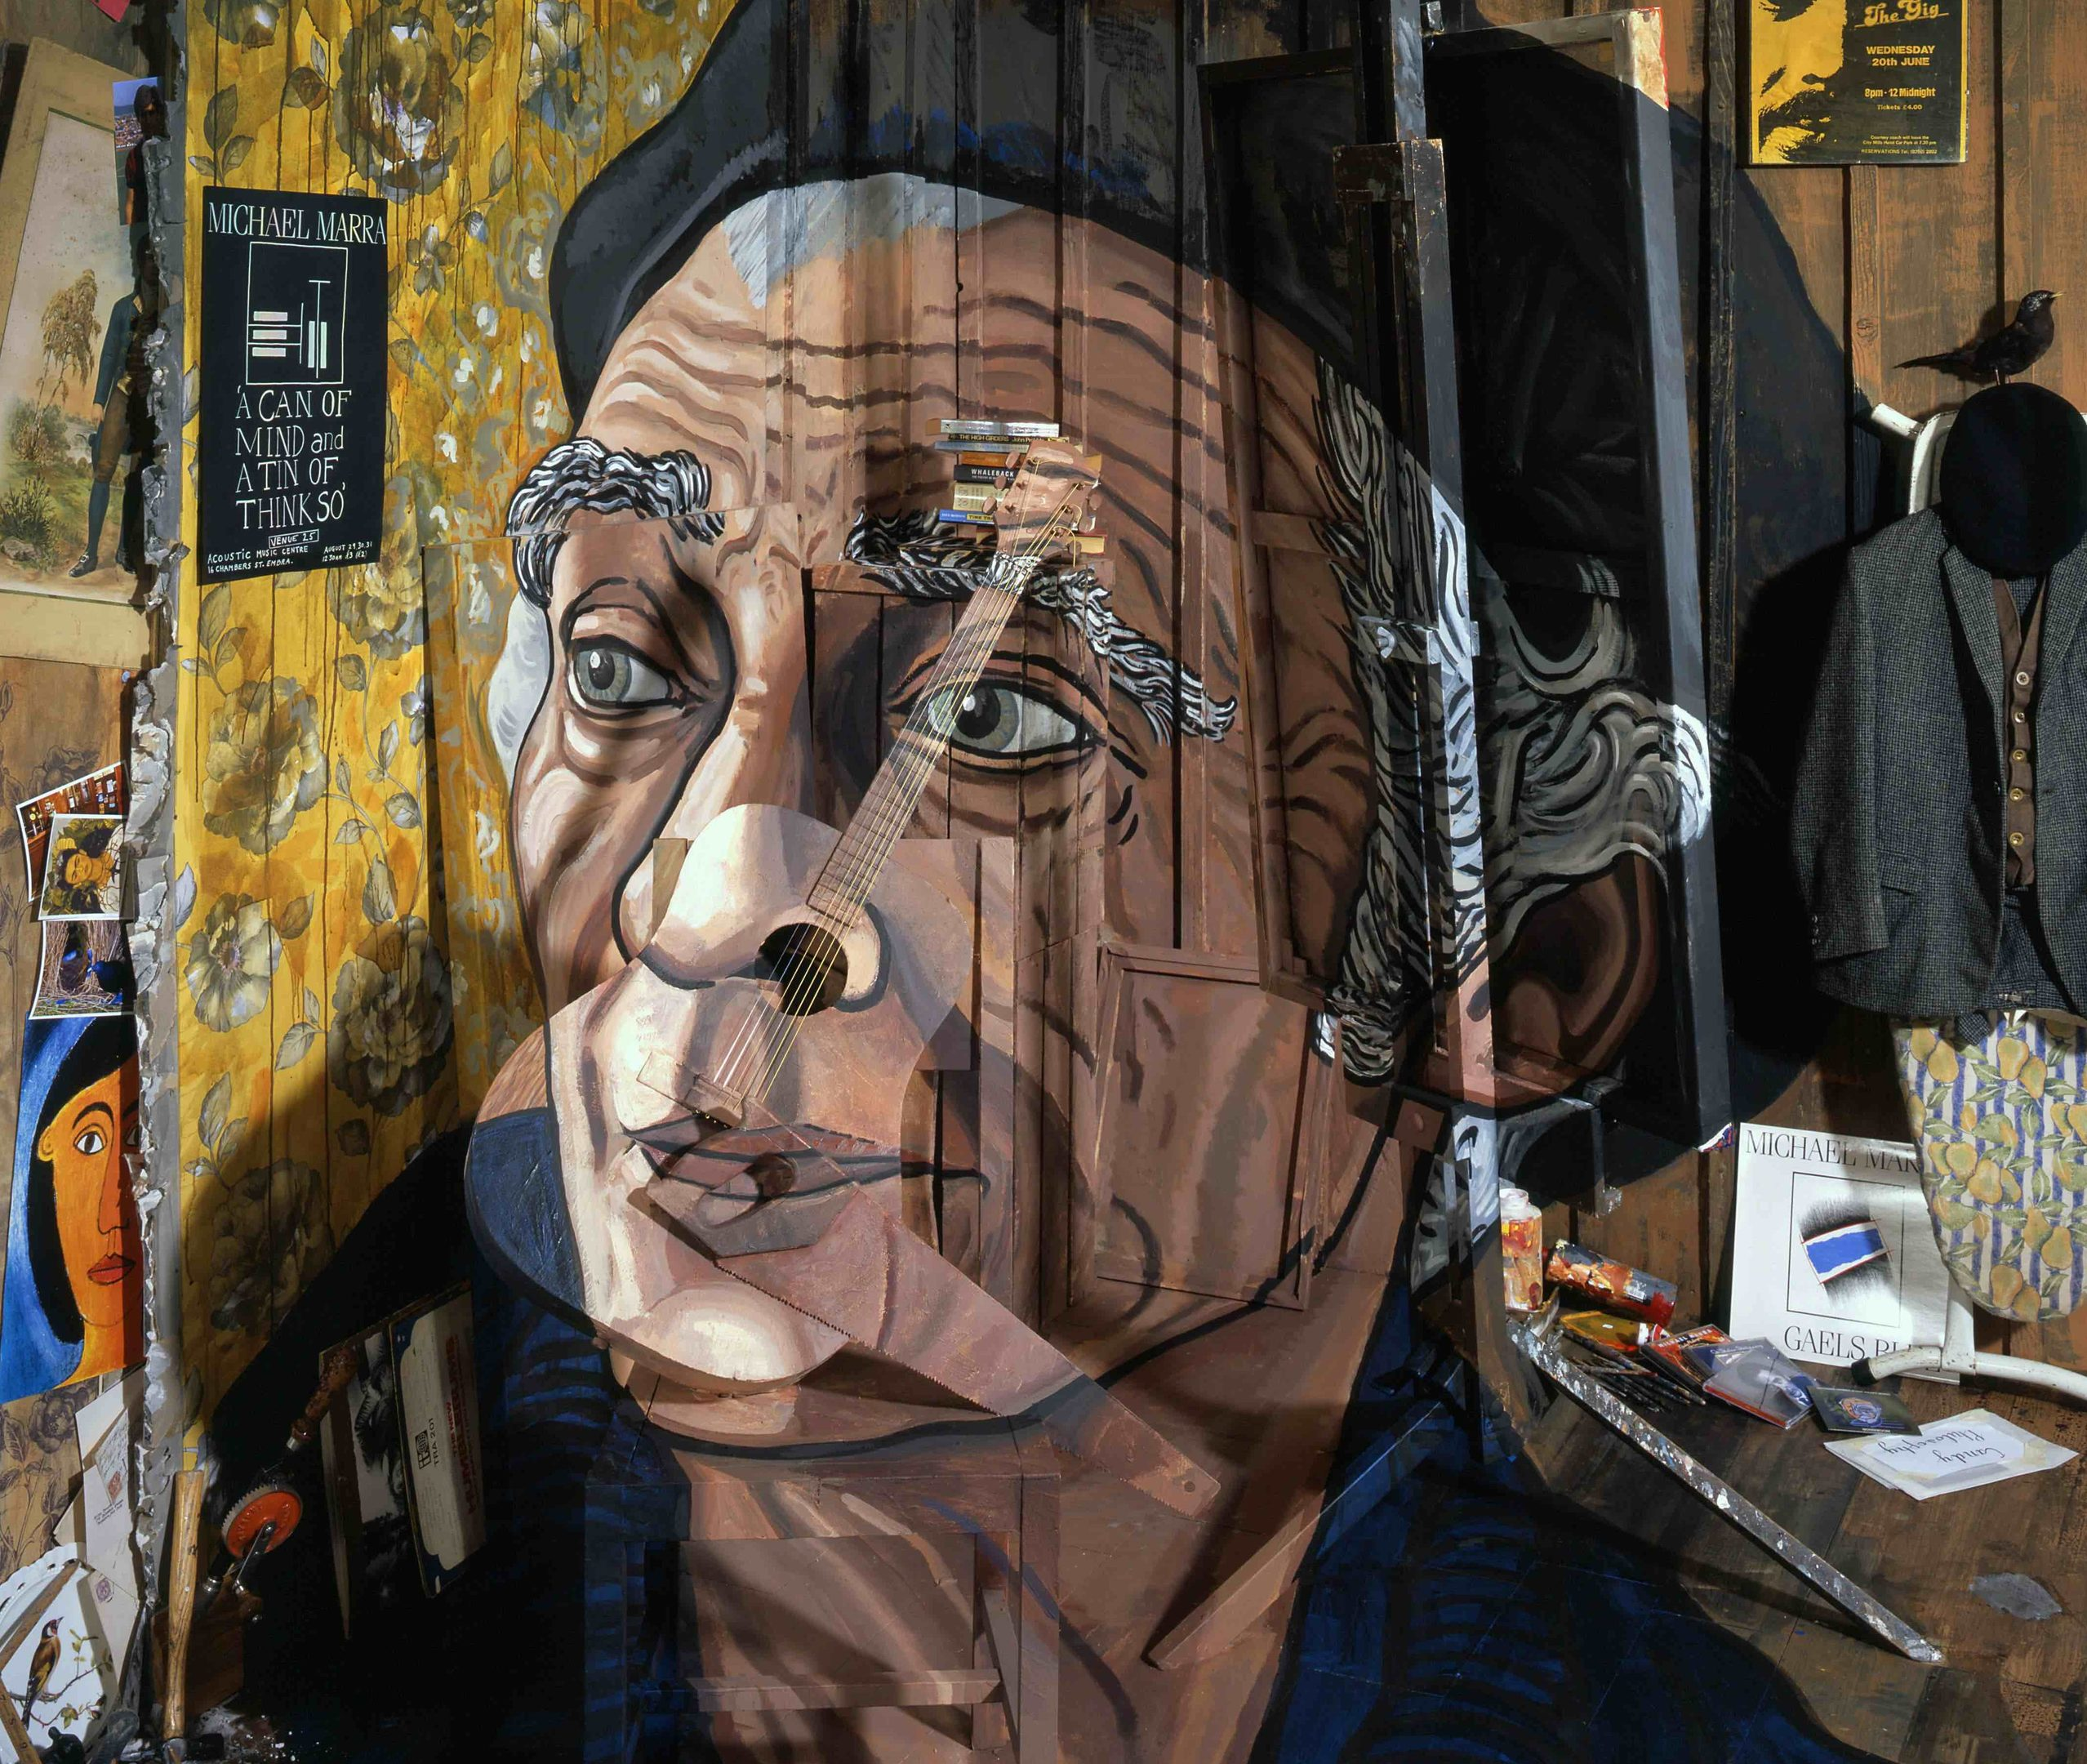 Calum Colvin RSA 's work depicting the late Dundee musician Michael Marra